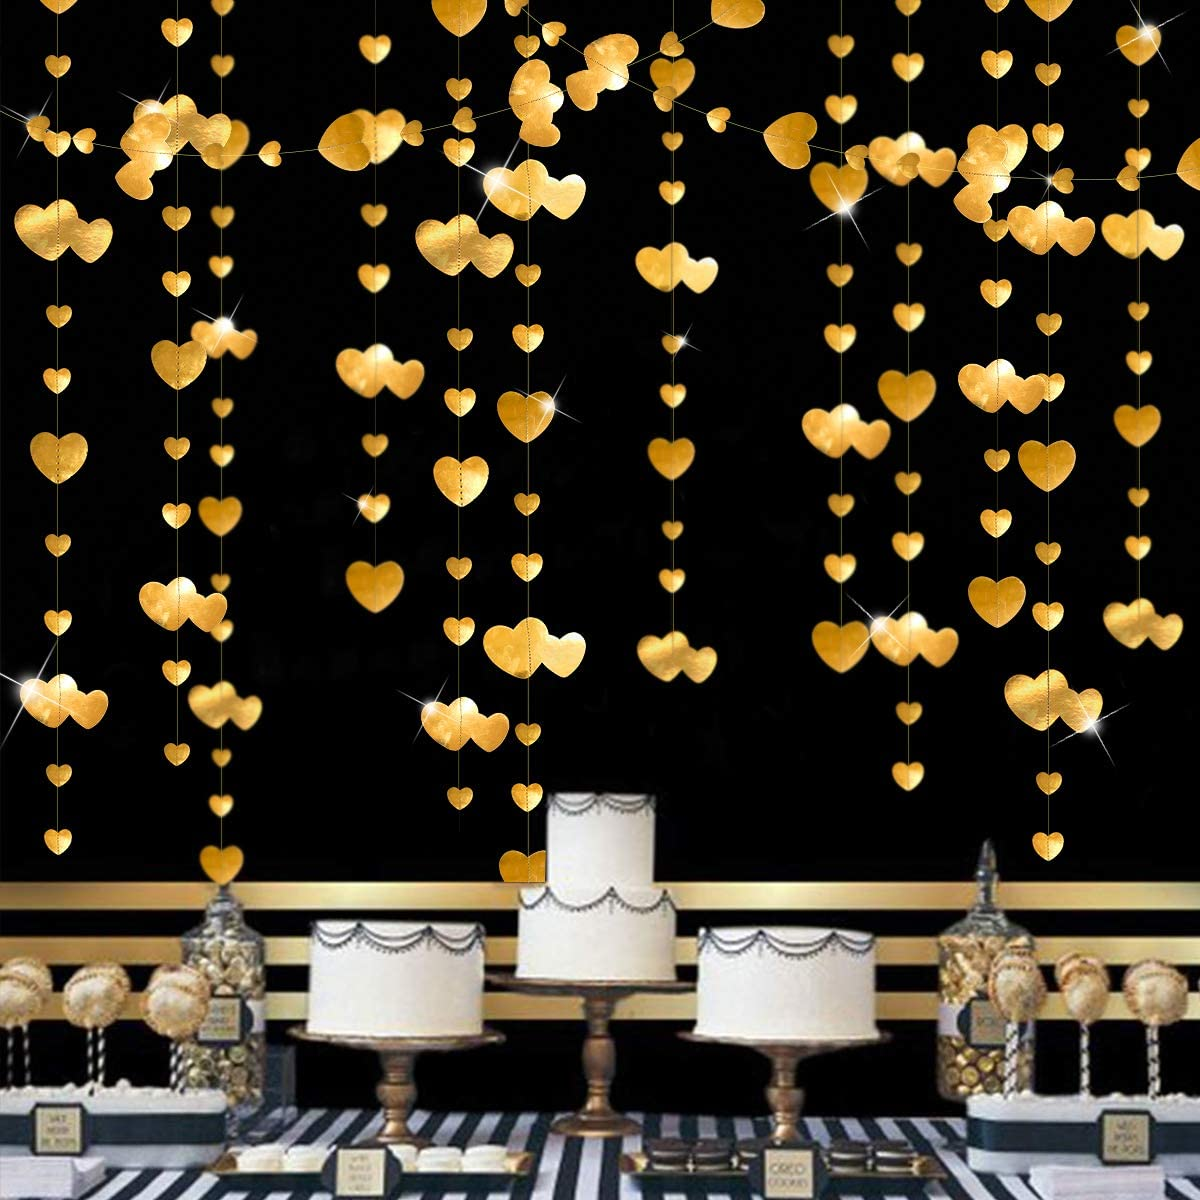 52 Ft Gold Heart Garland Kit Double Sided Metallic Paper Banner Streamer for Engagement Anniversary Bridal Shower Wedding Valentine's Day Bachelorette Party Decorations Supplies(4 Packs)